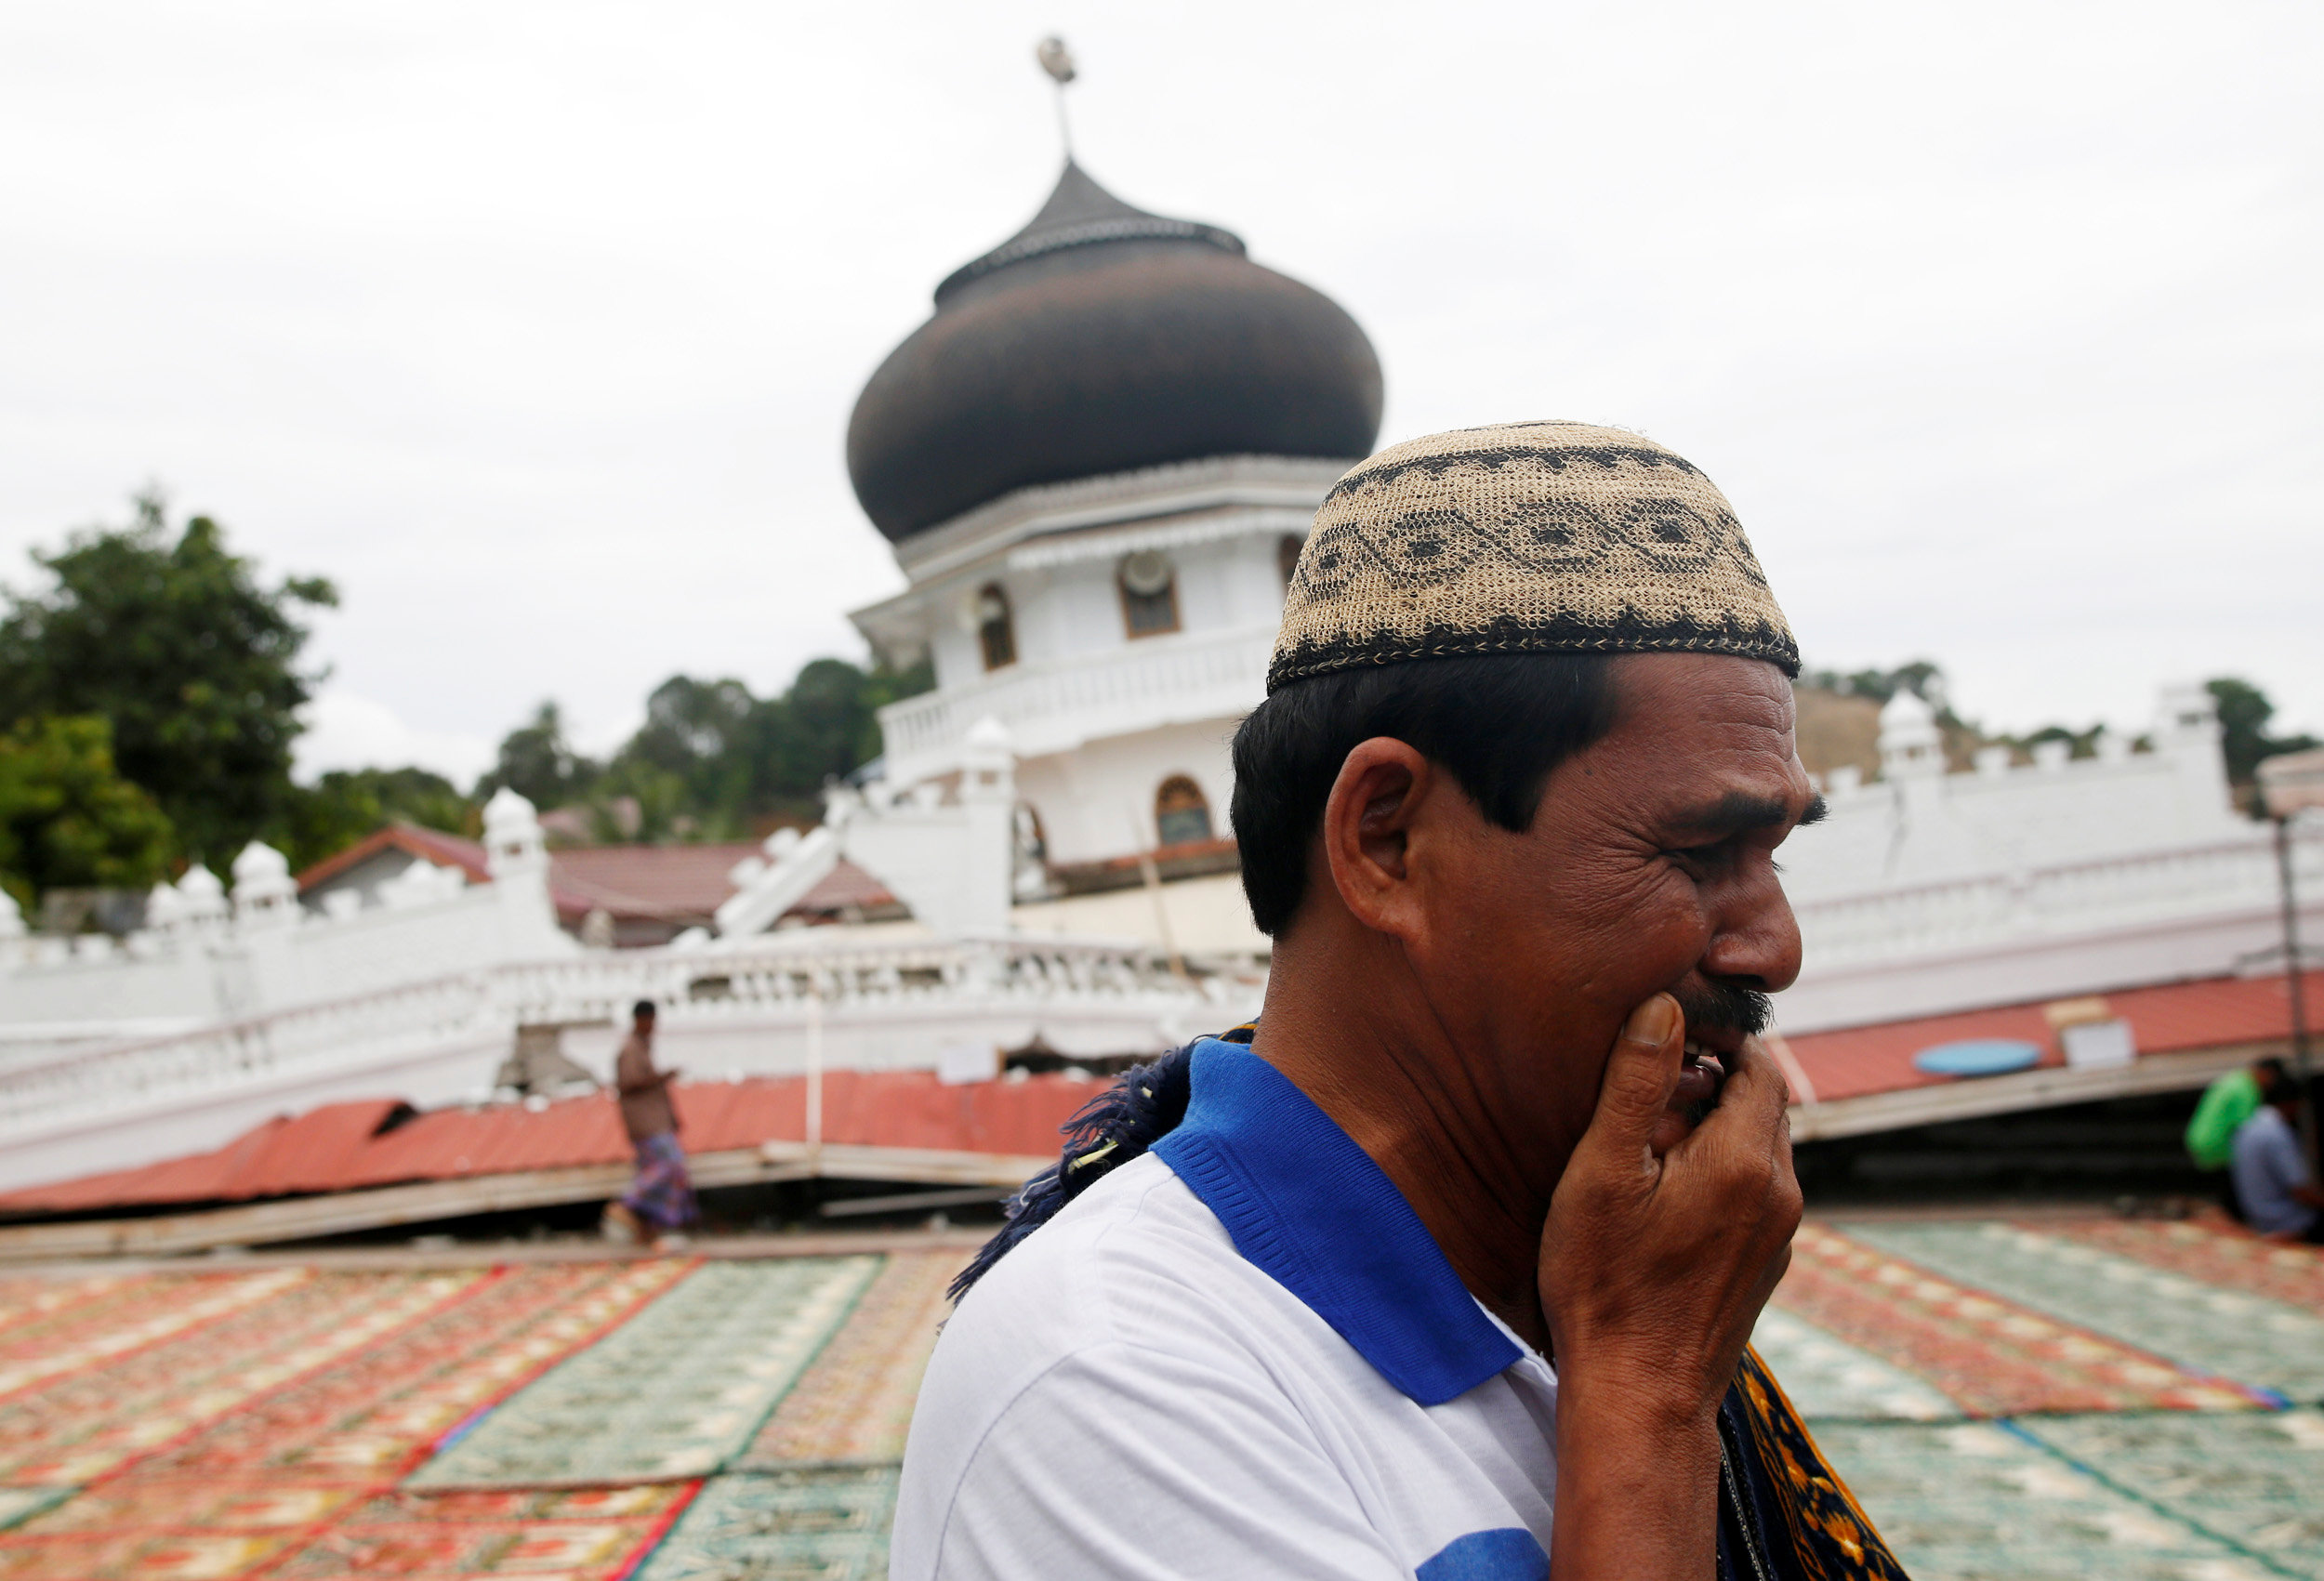 A Muslim man weeps as he arrives for Friday prayers at Jami Quba mosque which collapsed during this week's earthquake in Pidie Jaya, Aceh province, Indonesia